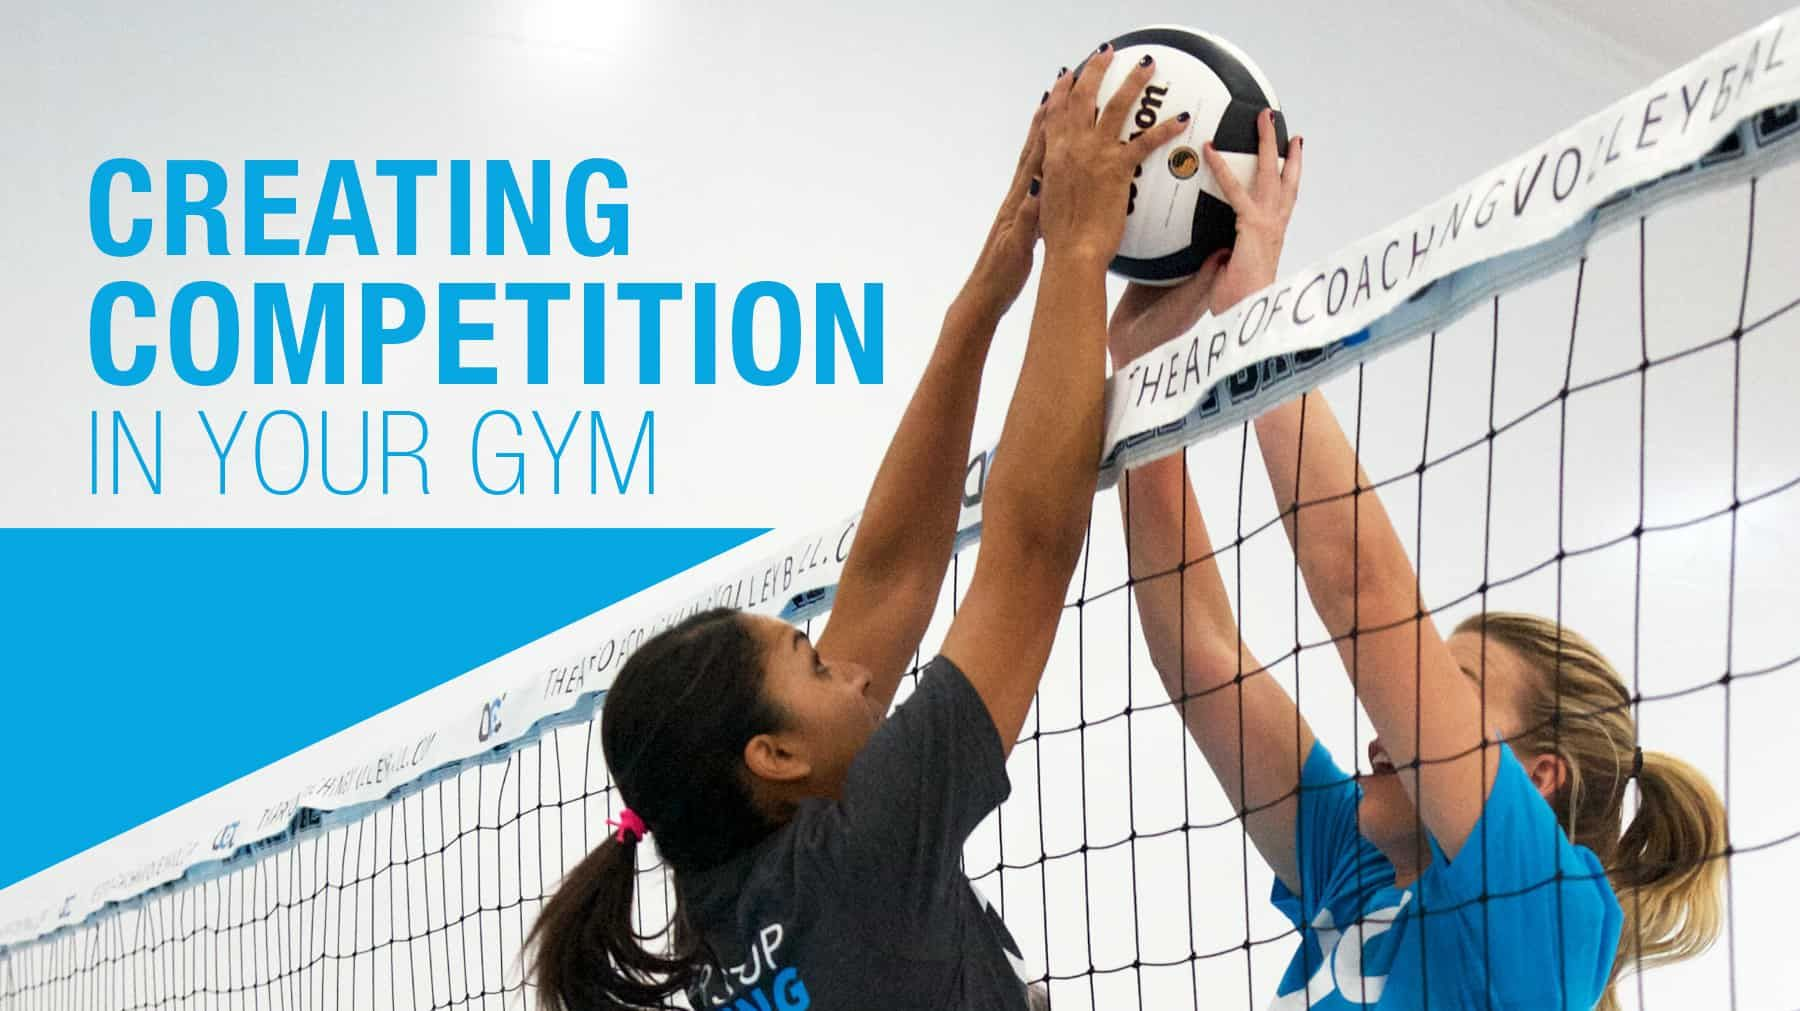 10 Steps To Creating Competition In Your Gym The Art Of Coaching Volleyball Coaching Volleyball Volleyball Skills Volleyball Training